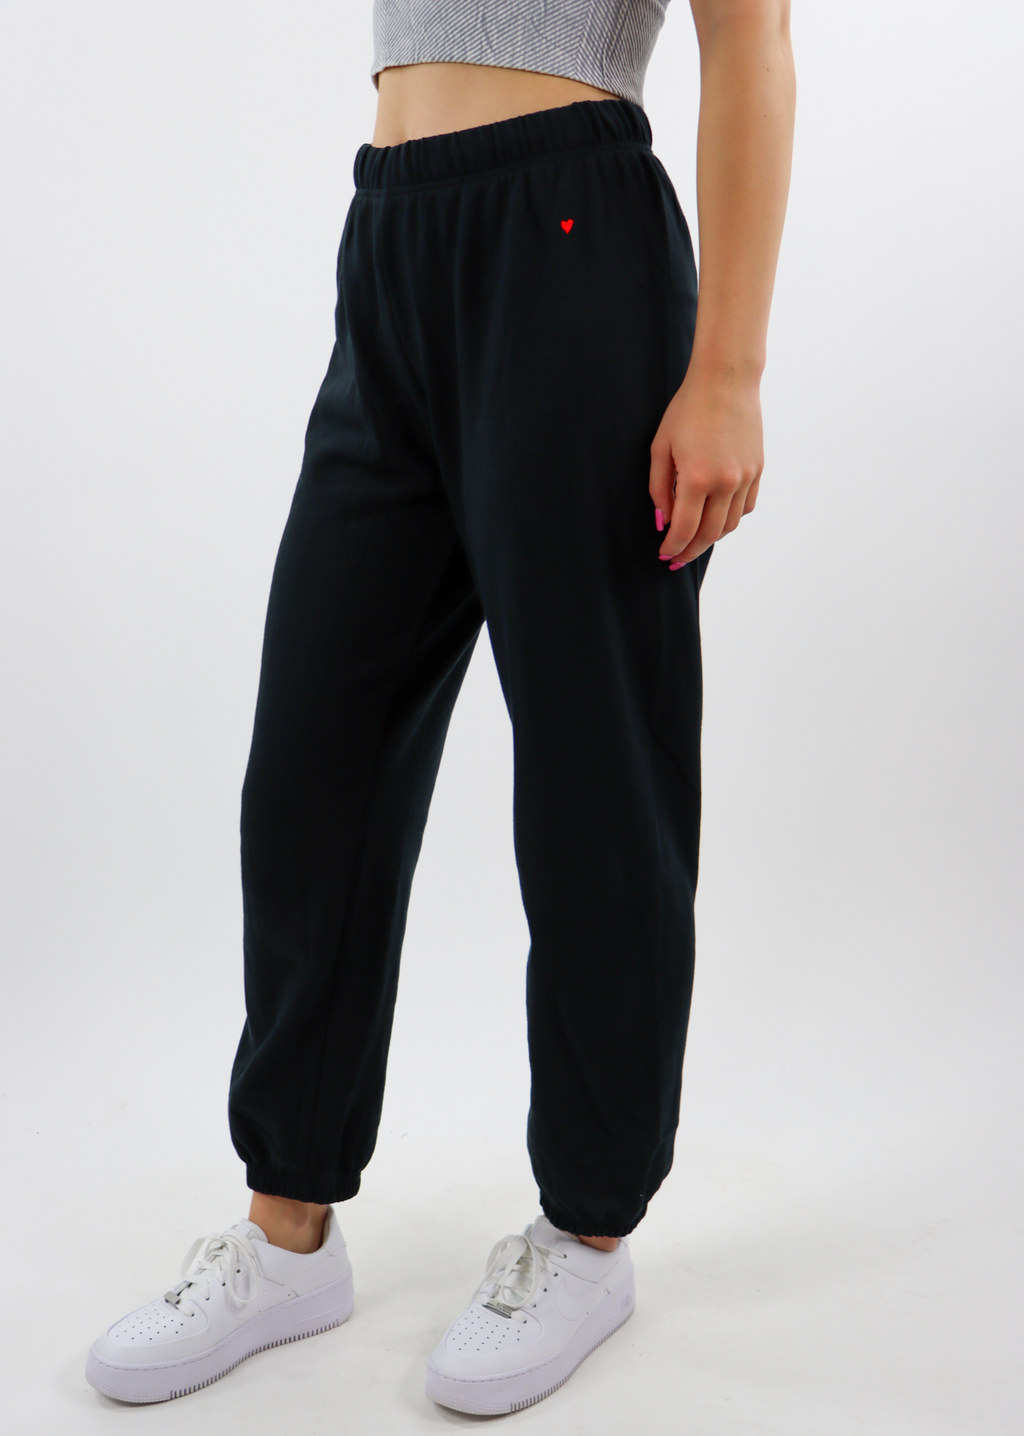 Heart Of Gold Sweatpants ★ Black